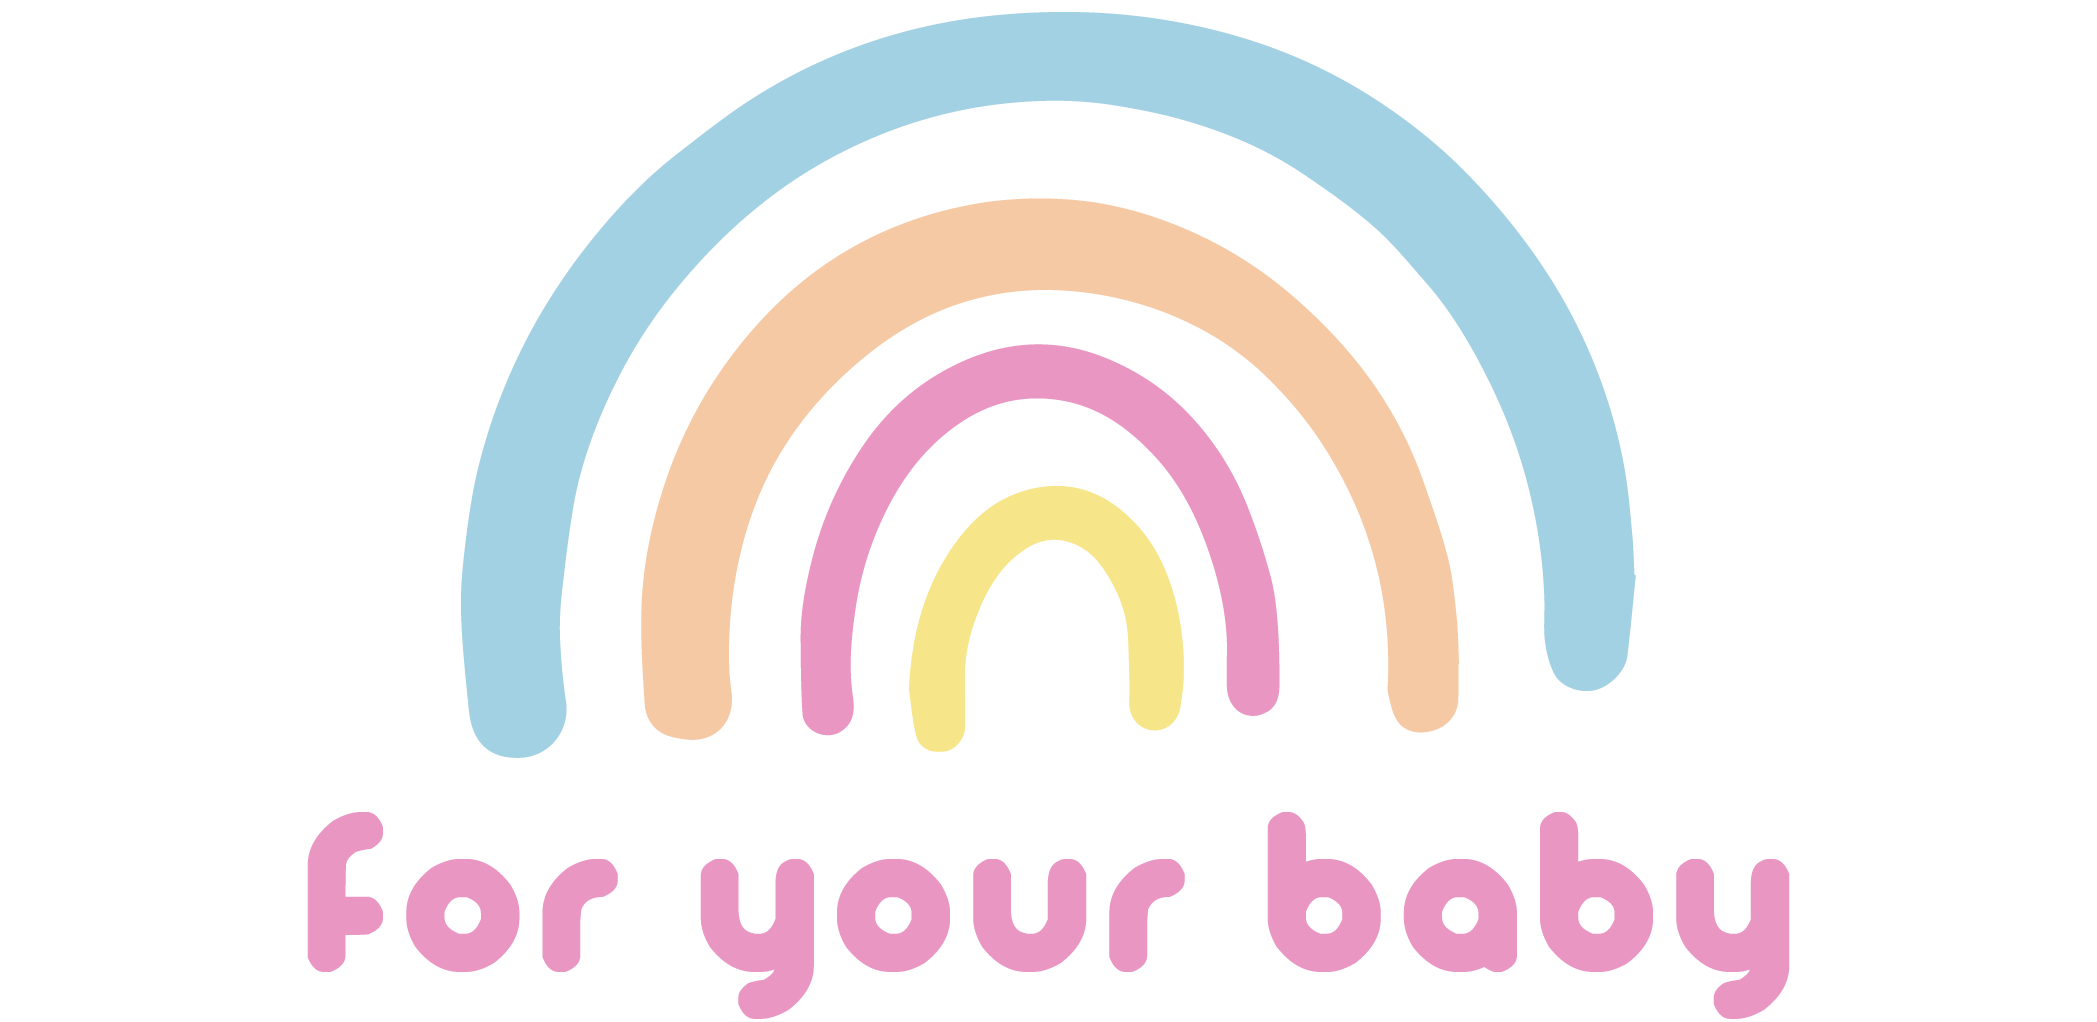 ForYourBaby